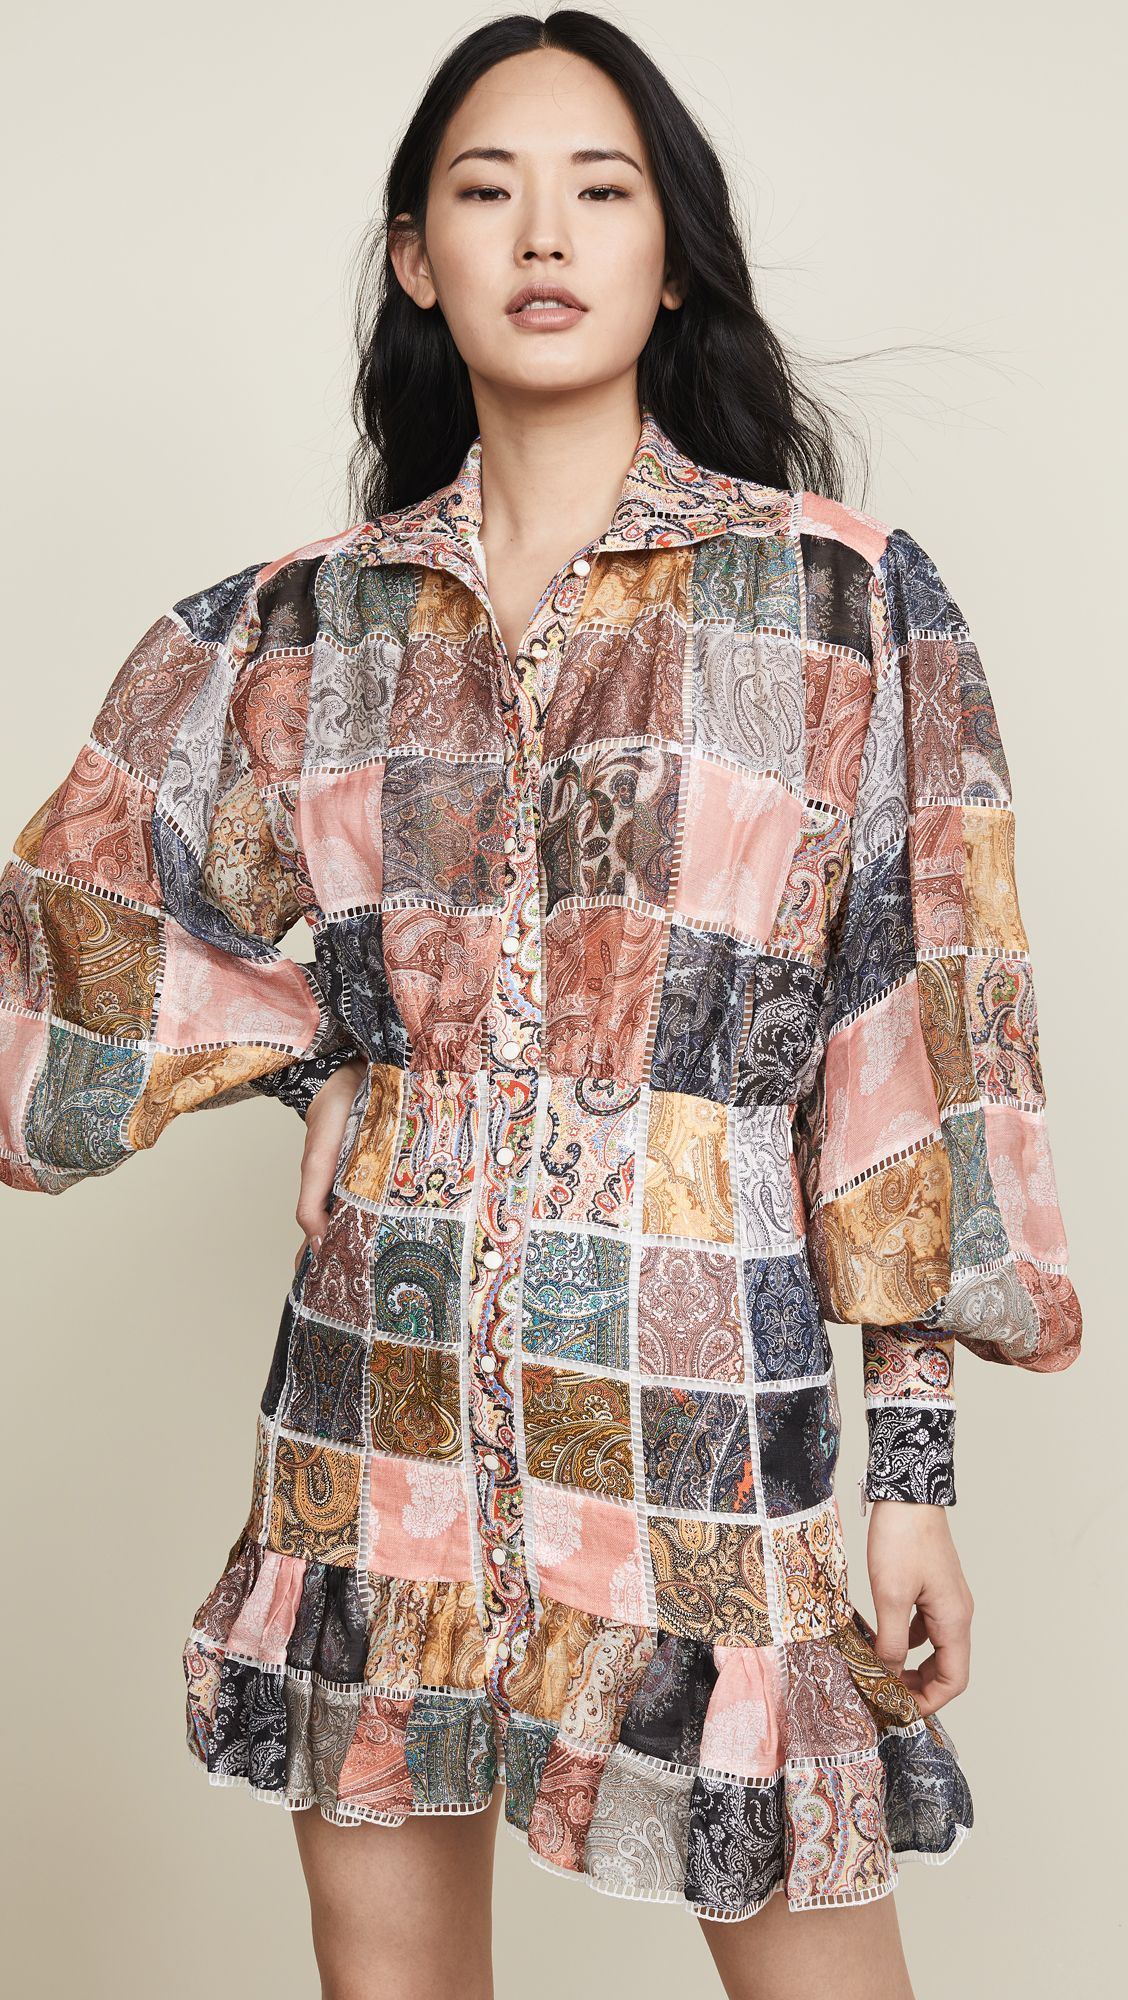 22402accfb69 Kollette - Zimmermann Ninety-Six Patch Mini Dress - The world's largest  fashion stores in one place!